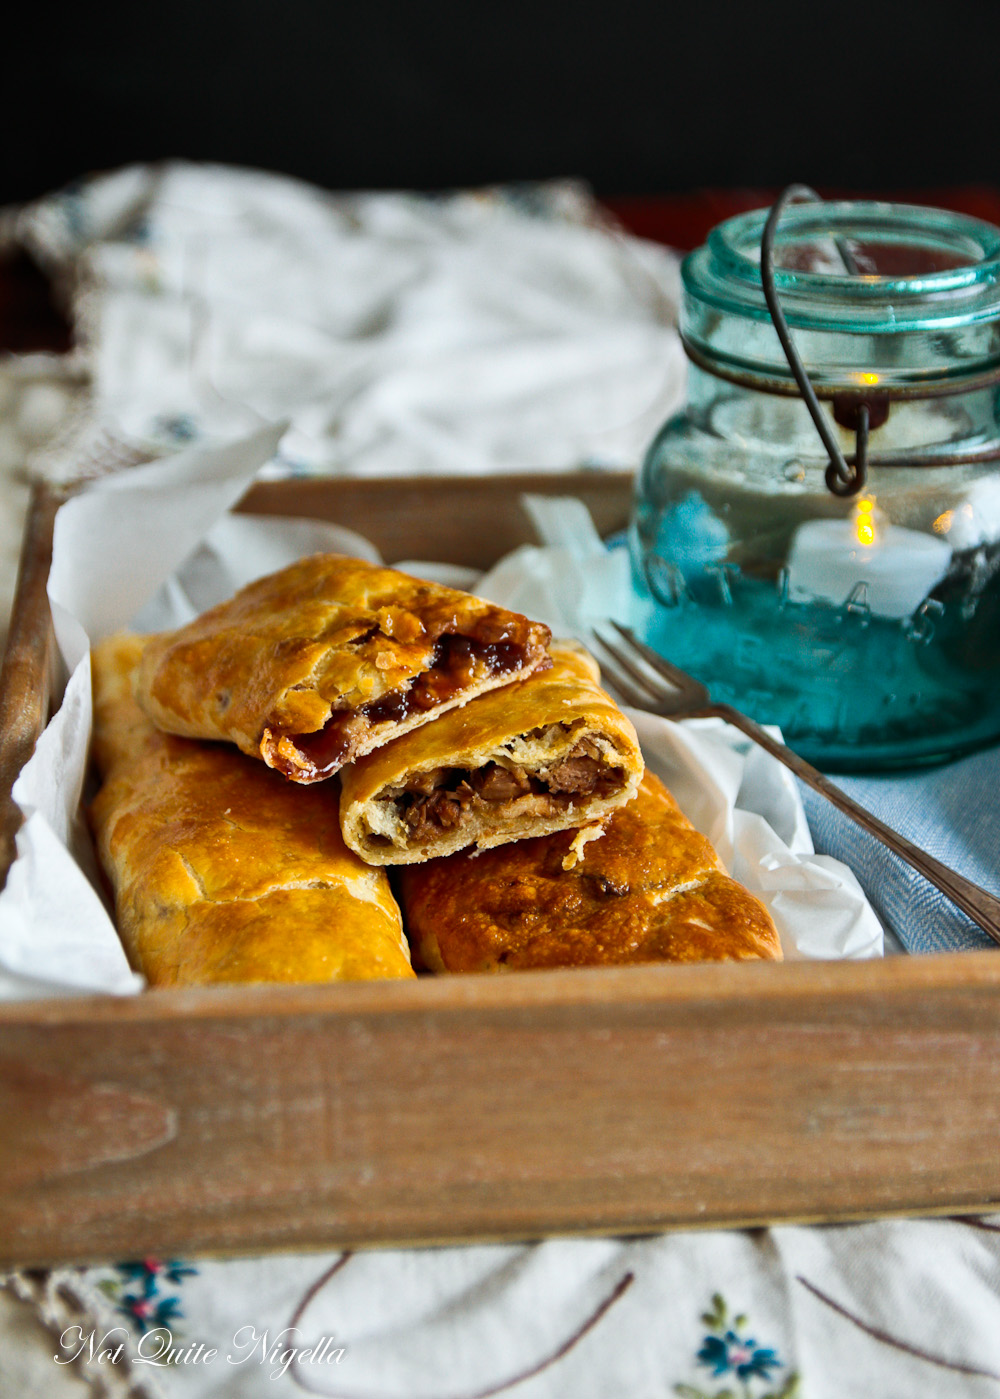 Bedfordshire Clanger Recipe @ Not Quite Nigella